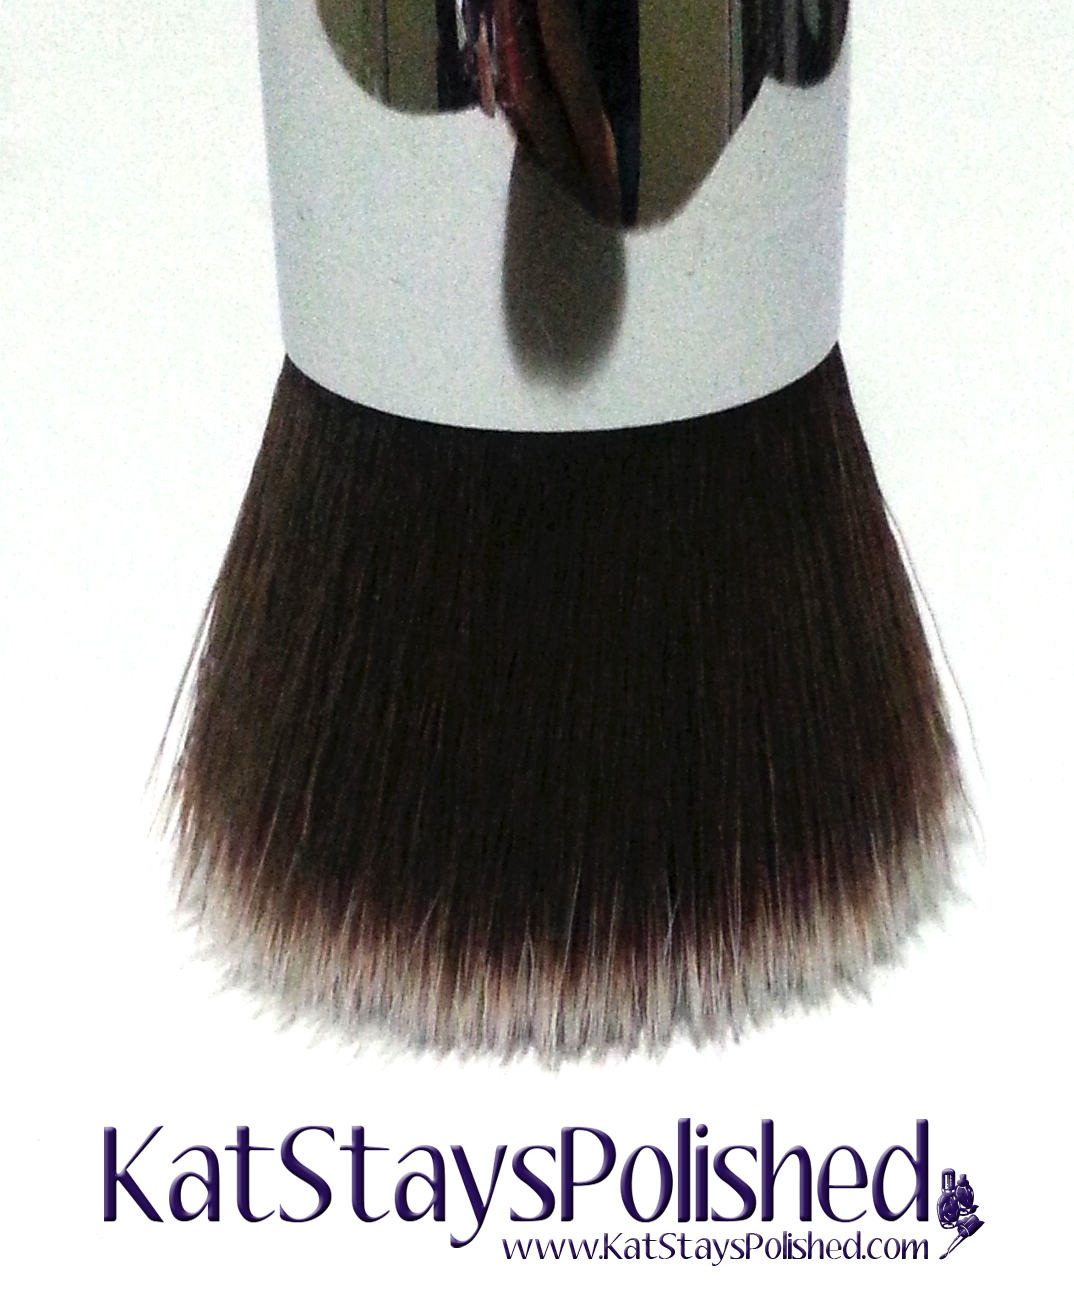 Sigma F80 Flat Kabuki Brush | Kat Stays Polished